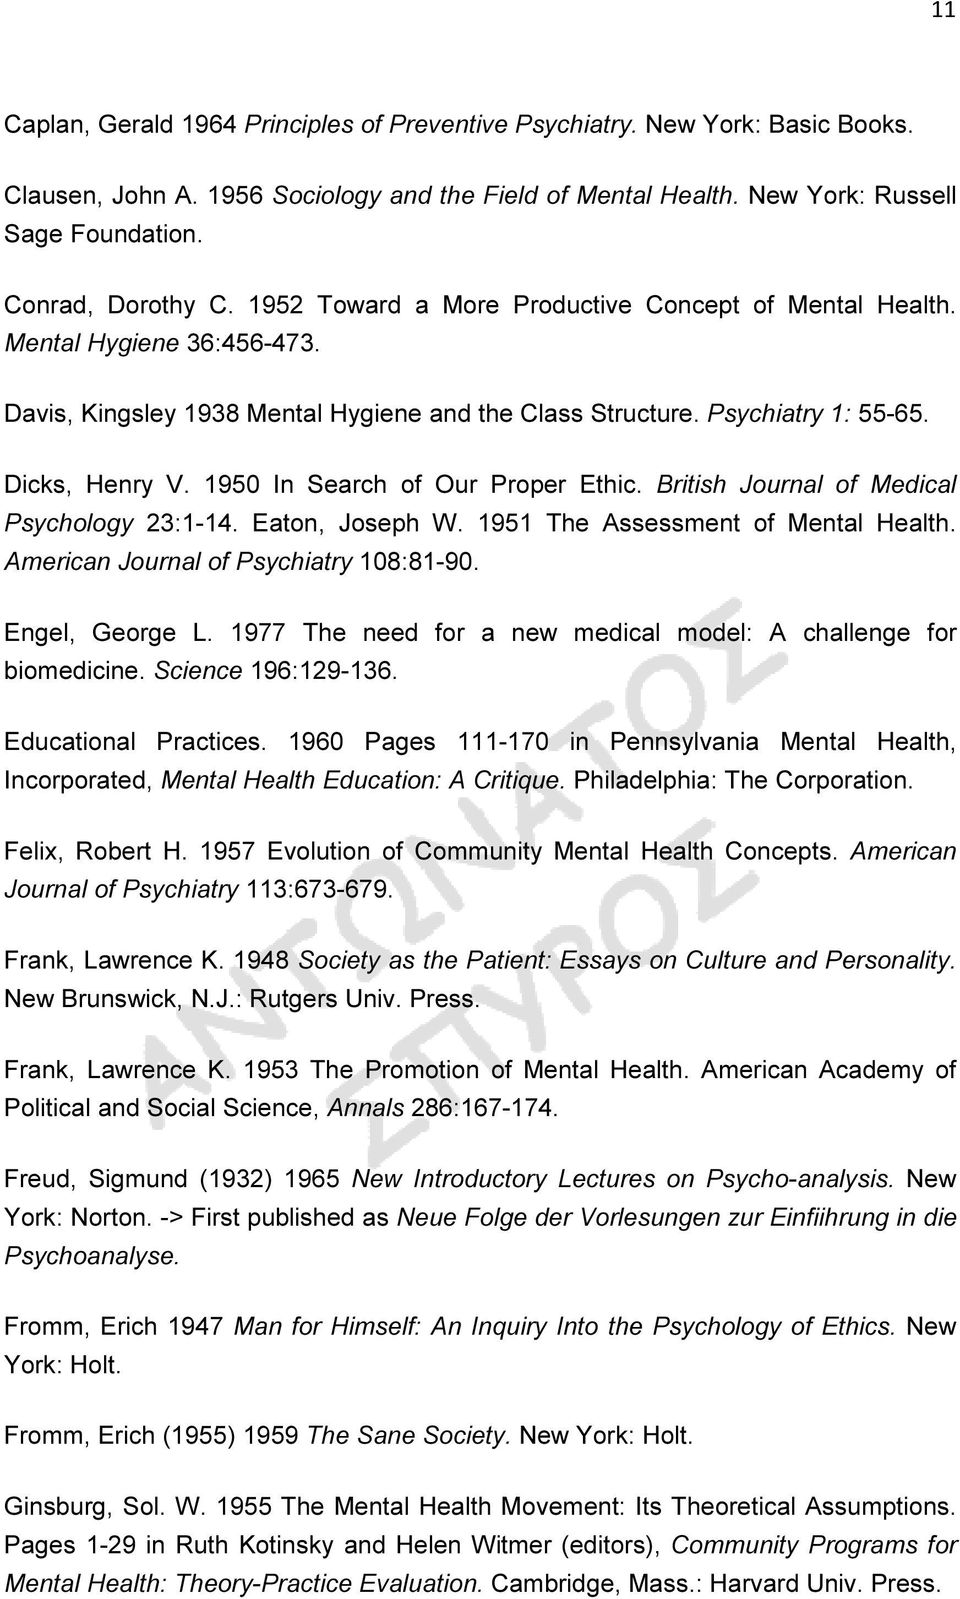 1950 In Search of Our Proper Ethic. British Journal of Medical Psychology 23:1-14. Eaton, Joseph W. 1951 The Assessment of Mental Health. American Journal of Psychiatry 108:81-90. Engel, George L.